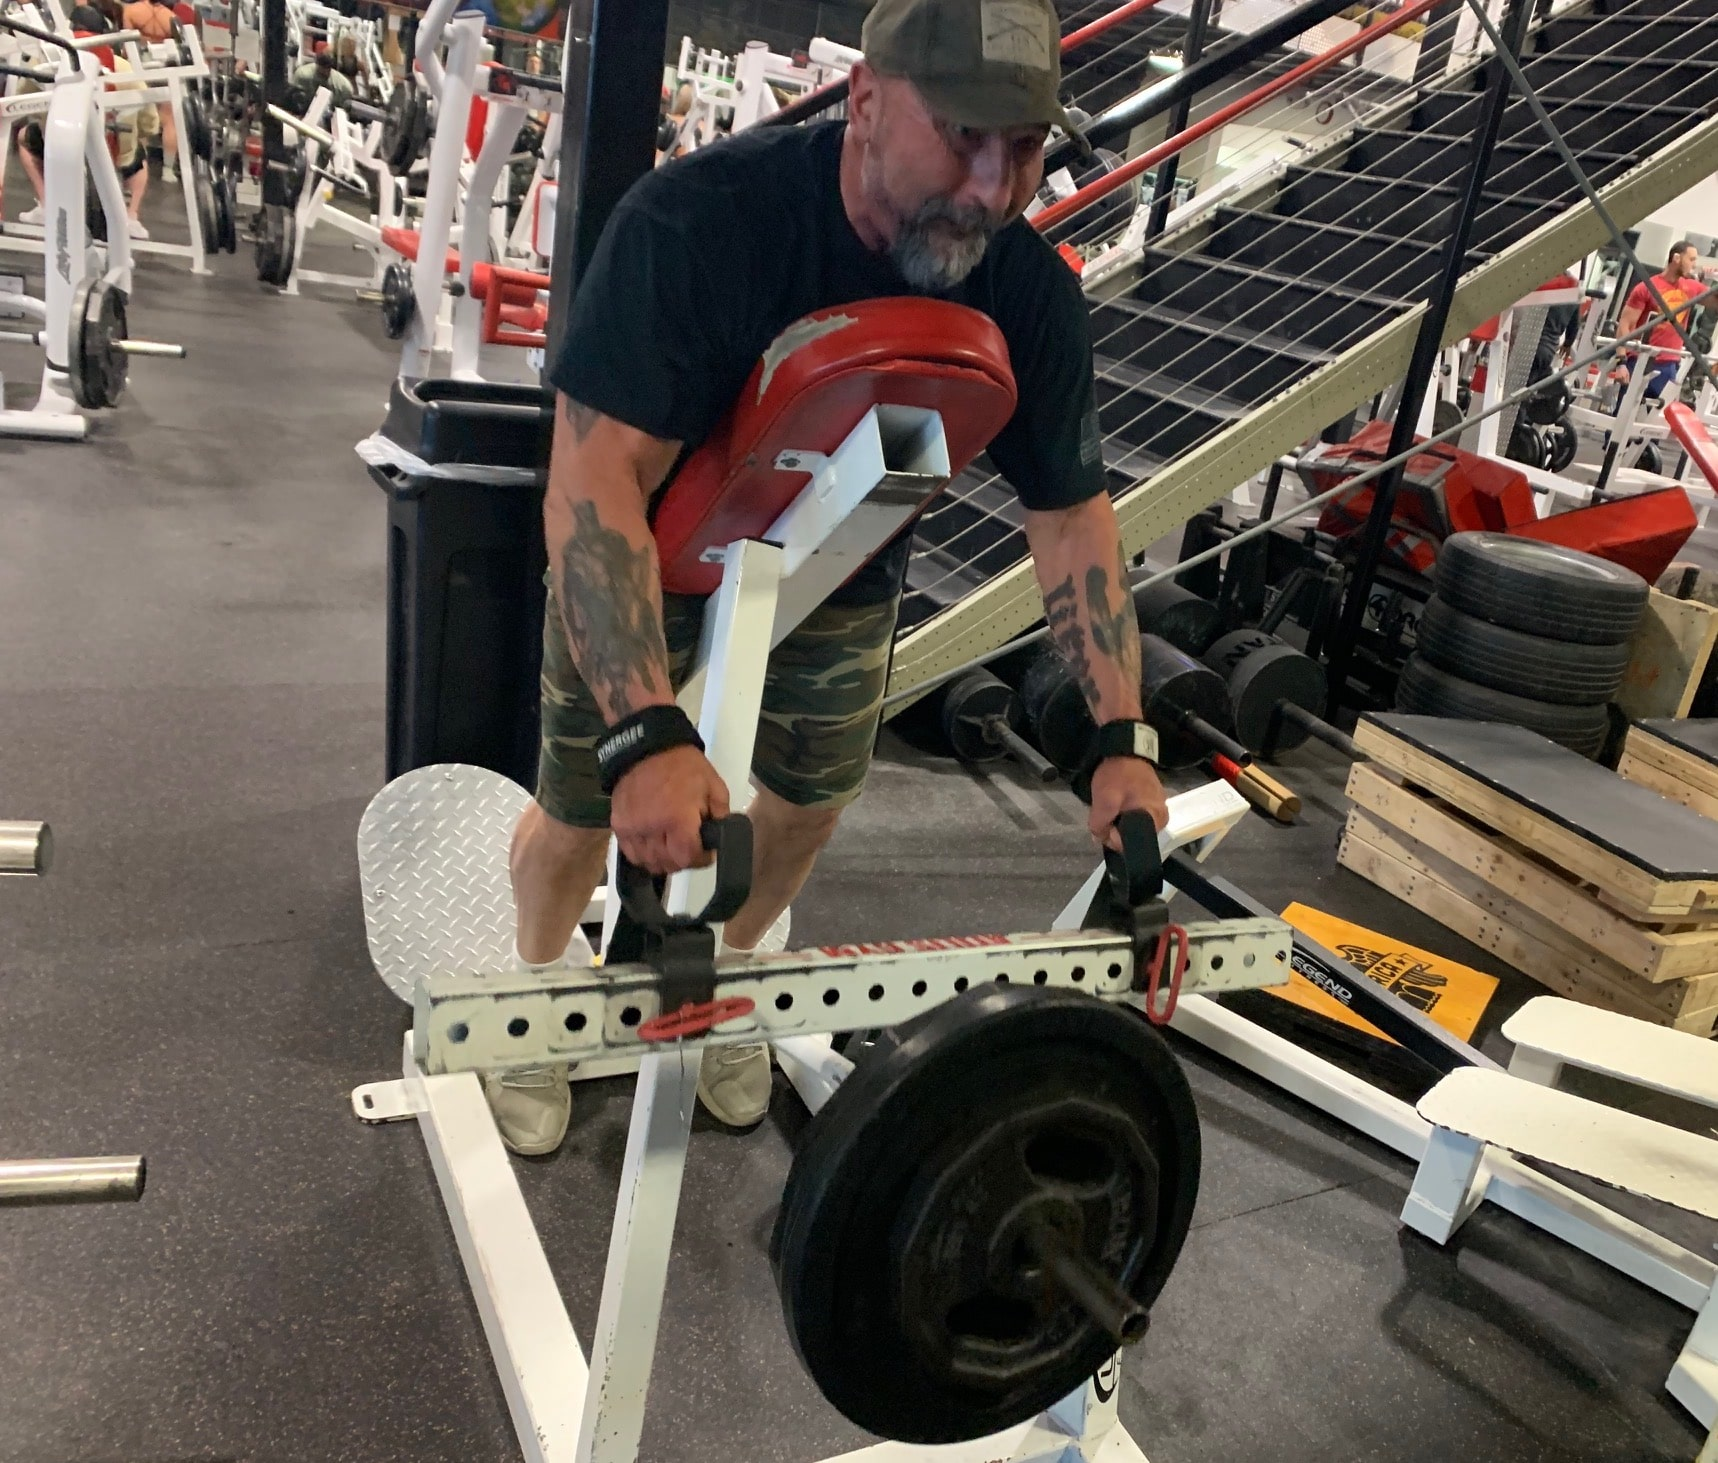 Keep Going And Power Through The Workout article by Jim Steel